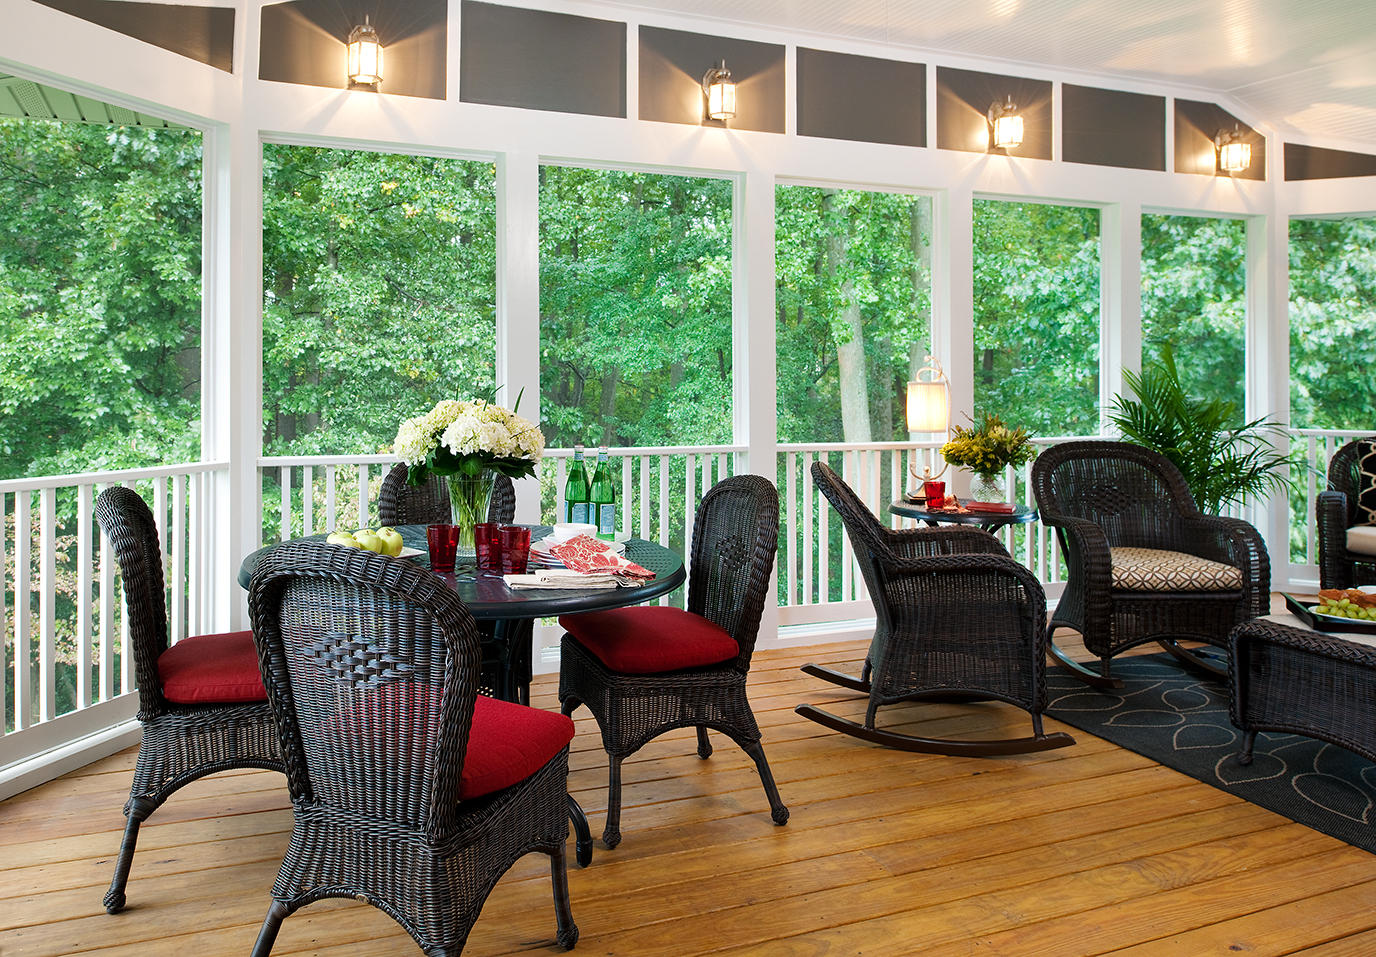 Screened In Porch Ideas Design consider enclosed front porch ideas too porch design ideas screened Screened In Porch Desings_pops Of Color 2_source Pinterest